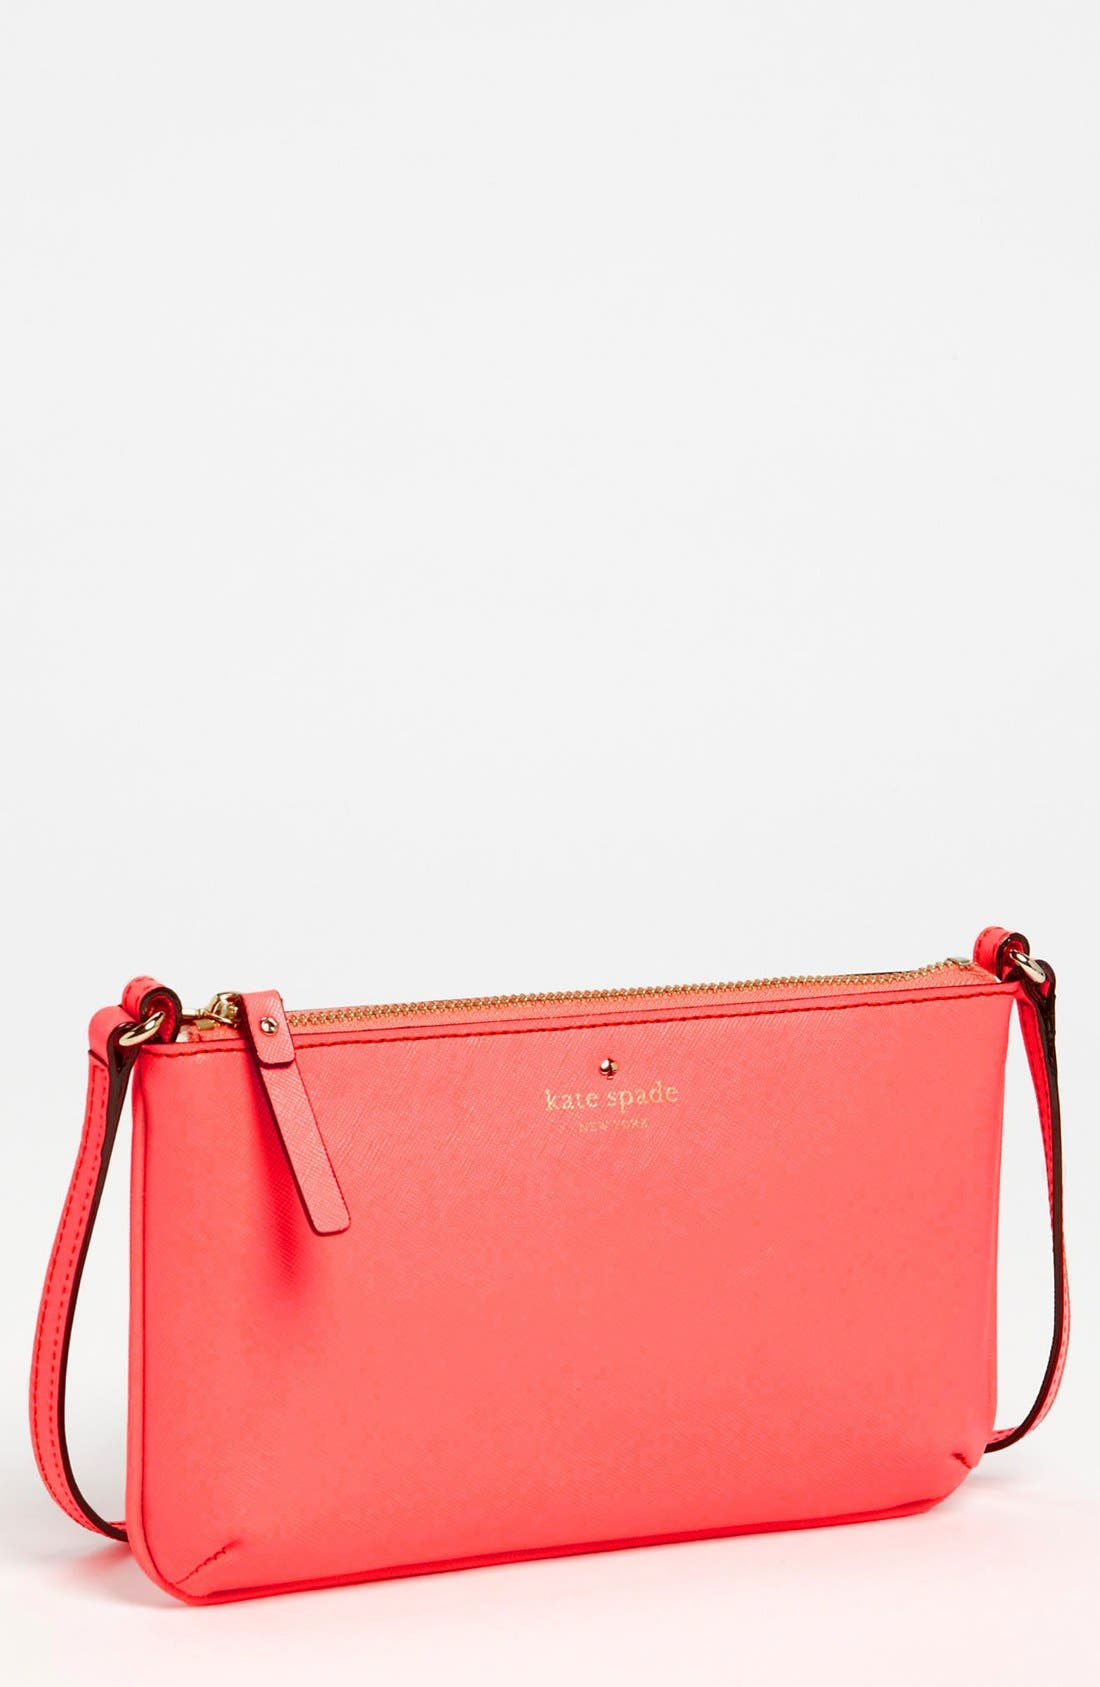 Main Image - kate spade new york 'mikas pond - janelle' crossbody bag